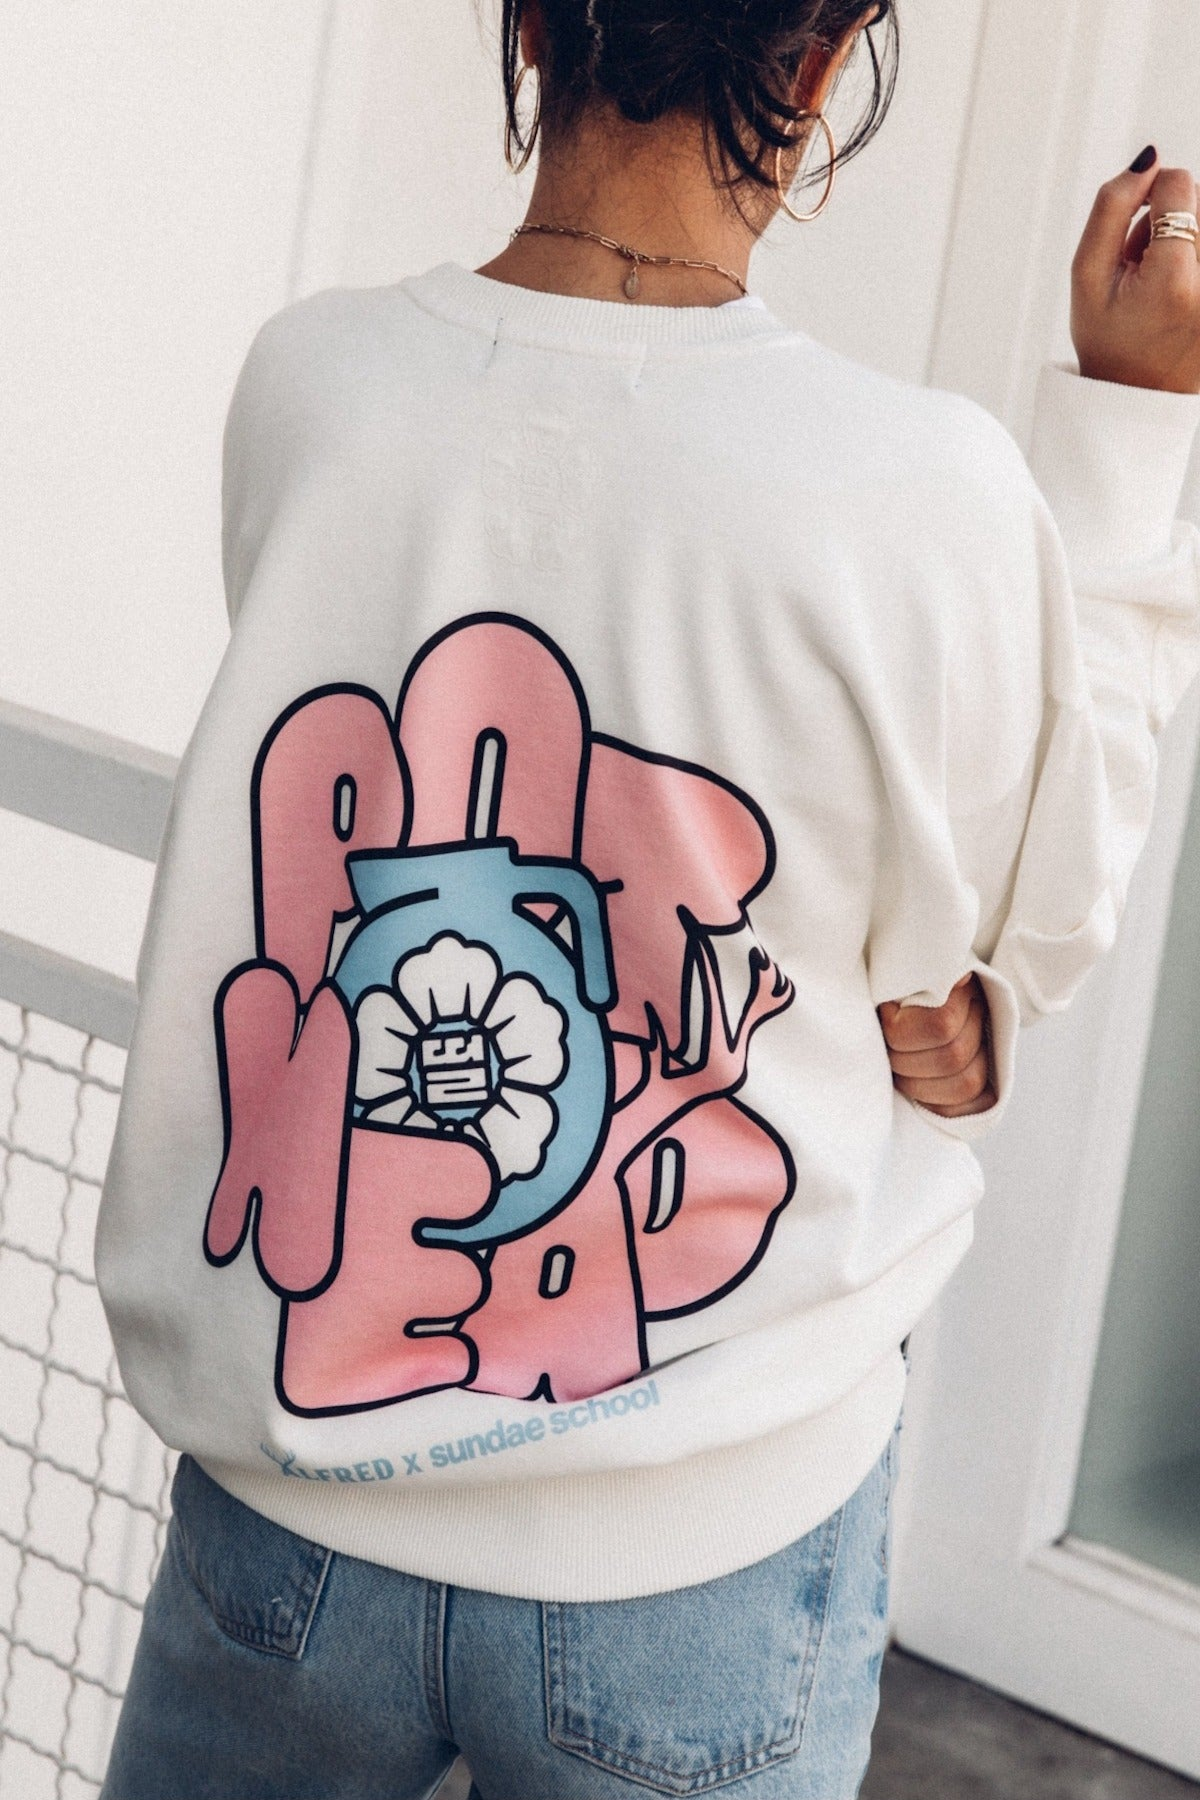 [Alfred x Sundae School] (Tea) Pot Head Crewneck